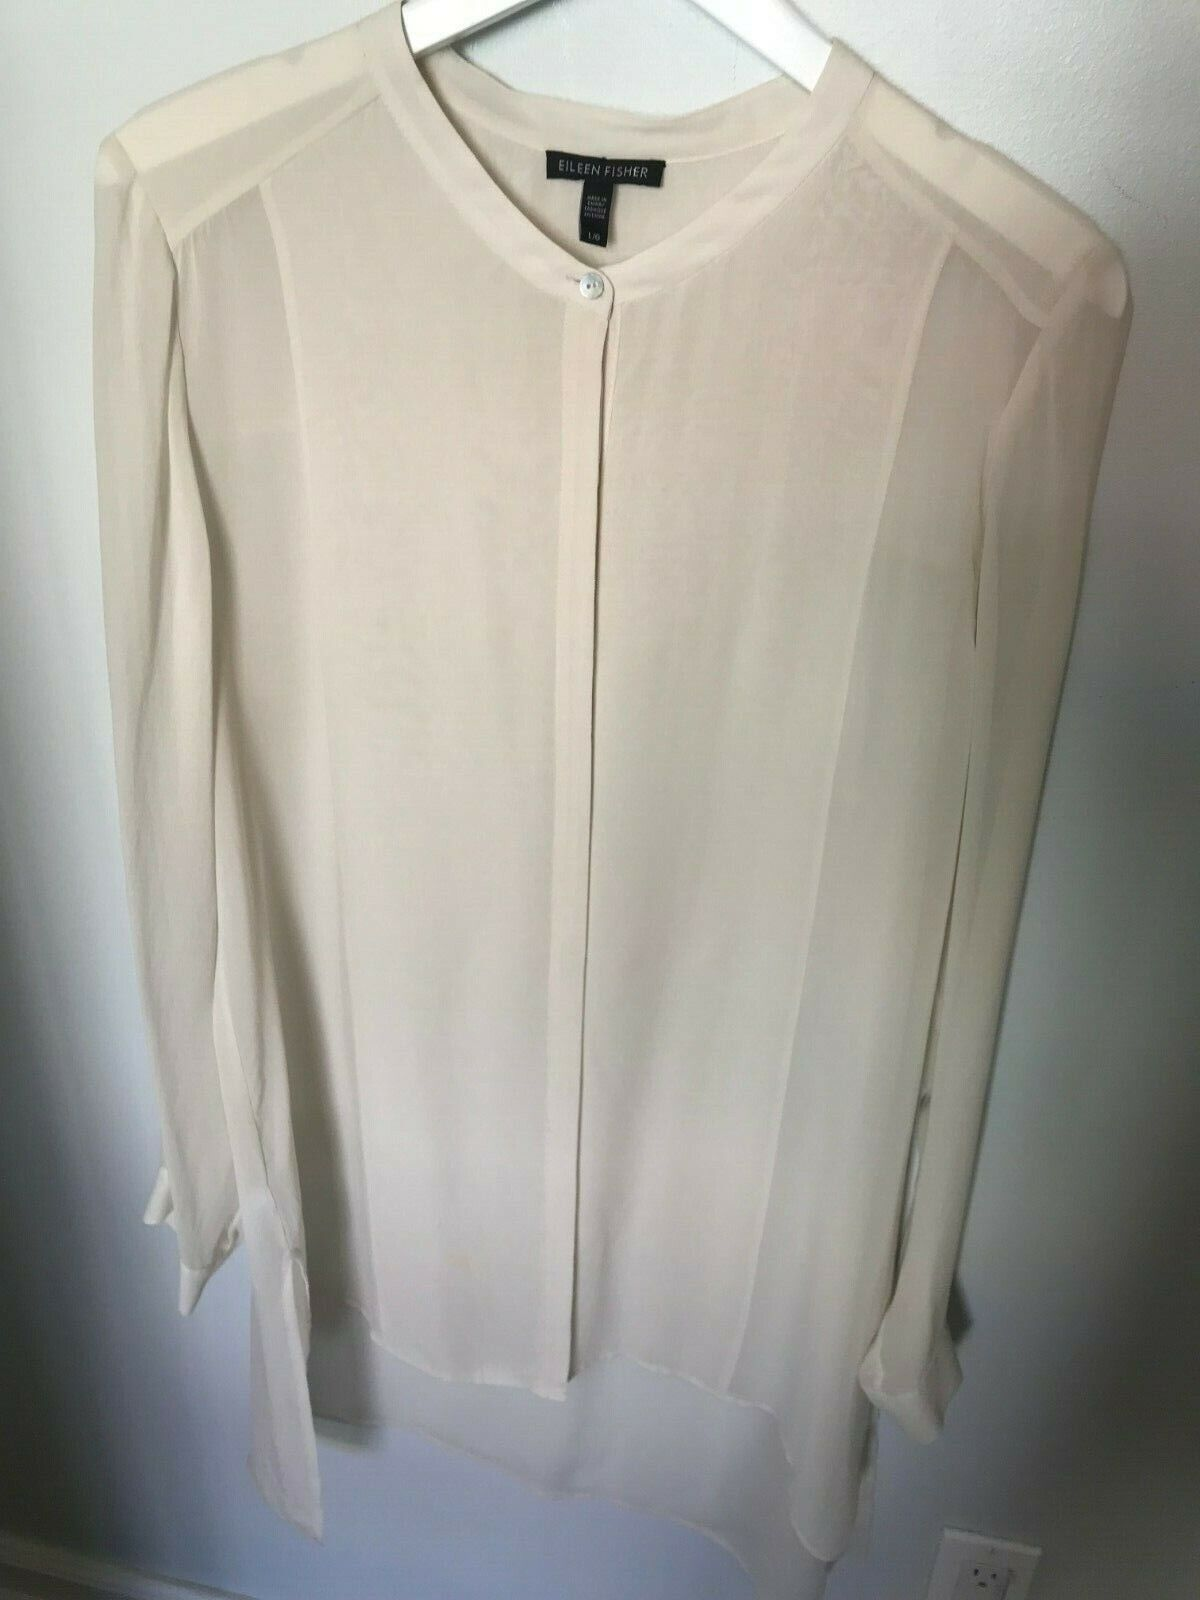 Eileen Fisher Ivory Long Button Tunic - Größe L